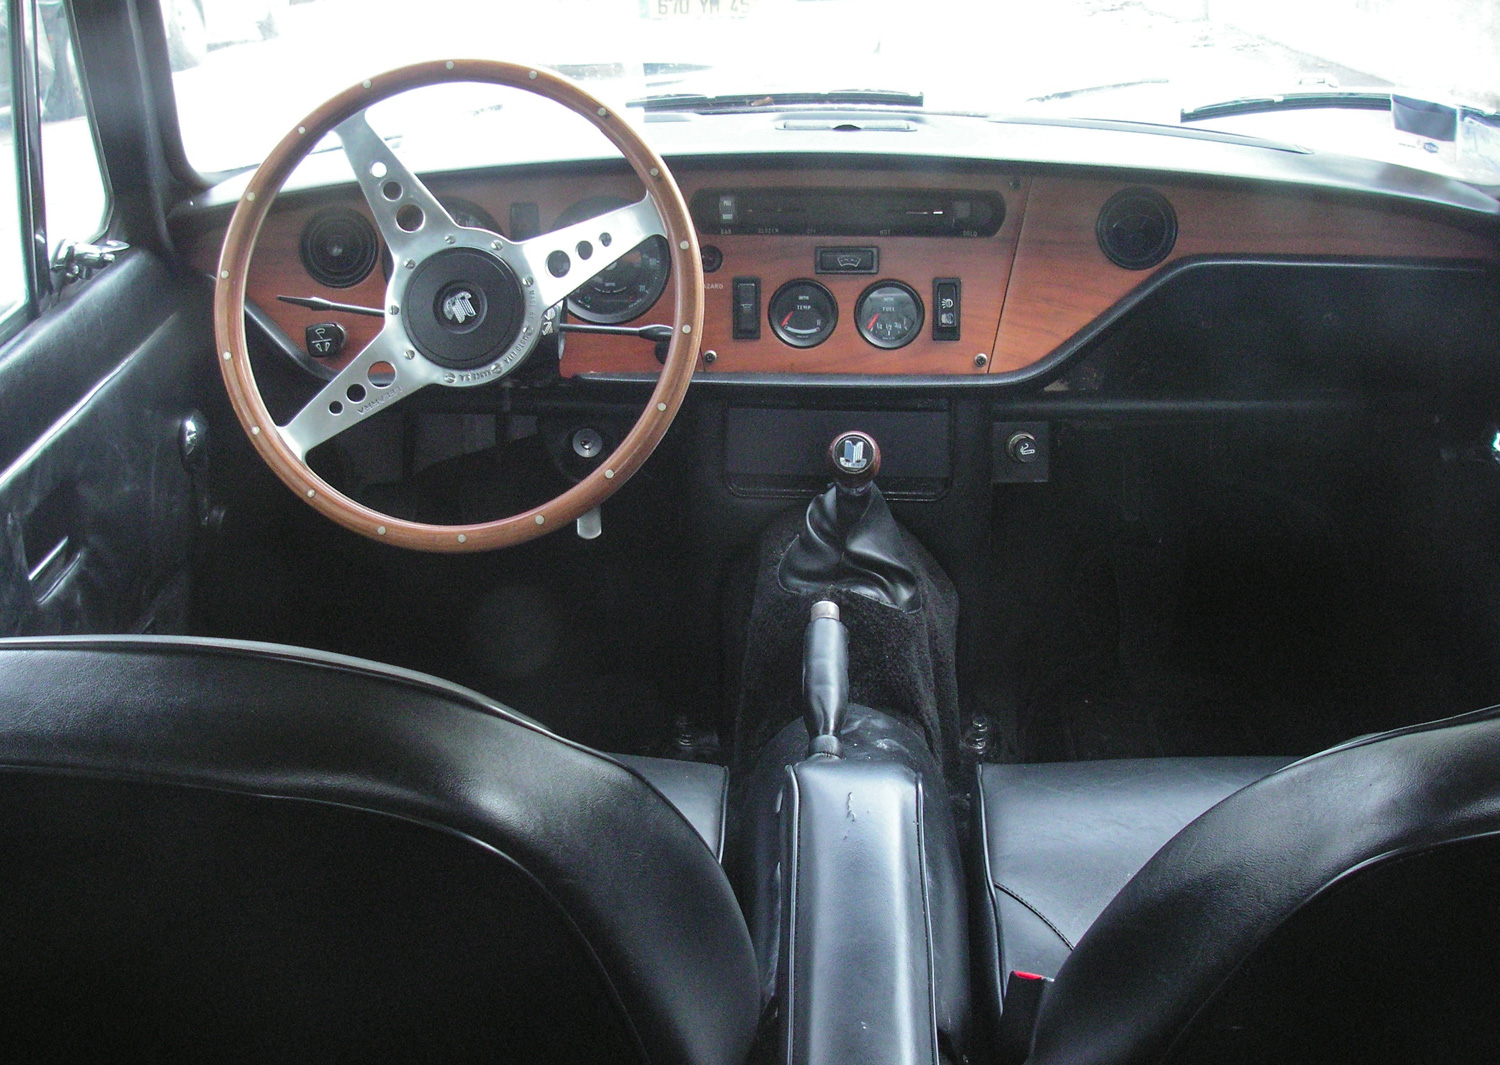 The GT6's wood dash and Smiths gauges.